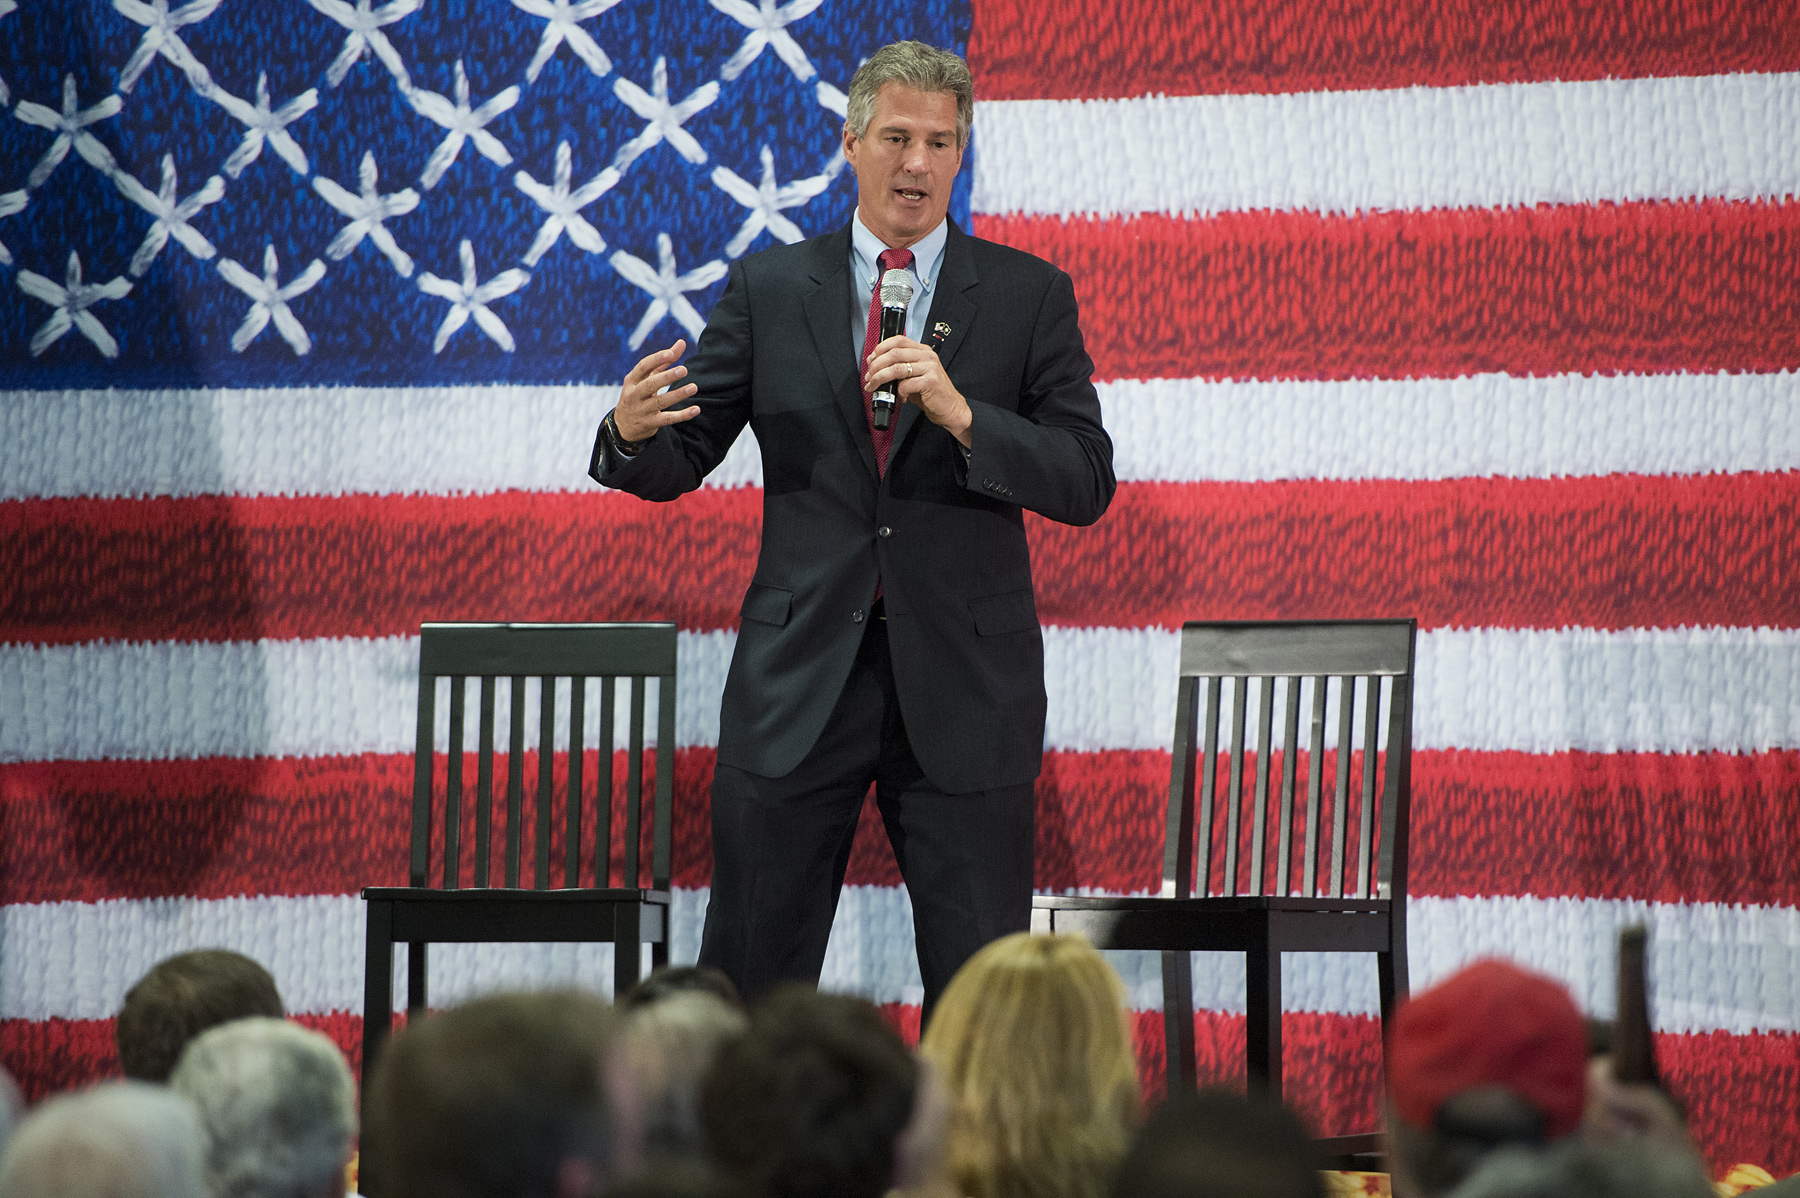 Former Sen. Scott Brown, candidate for U.S. Senate in New Hampshire, holds a campaign town hall rally at the Pinkerton Academy in Derry, N.H., on Aug. 18, 2014.